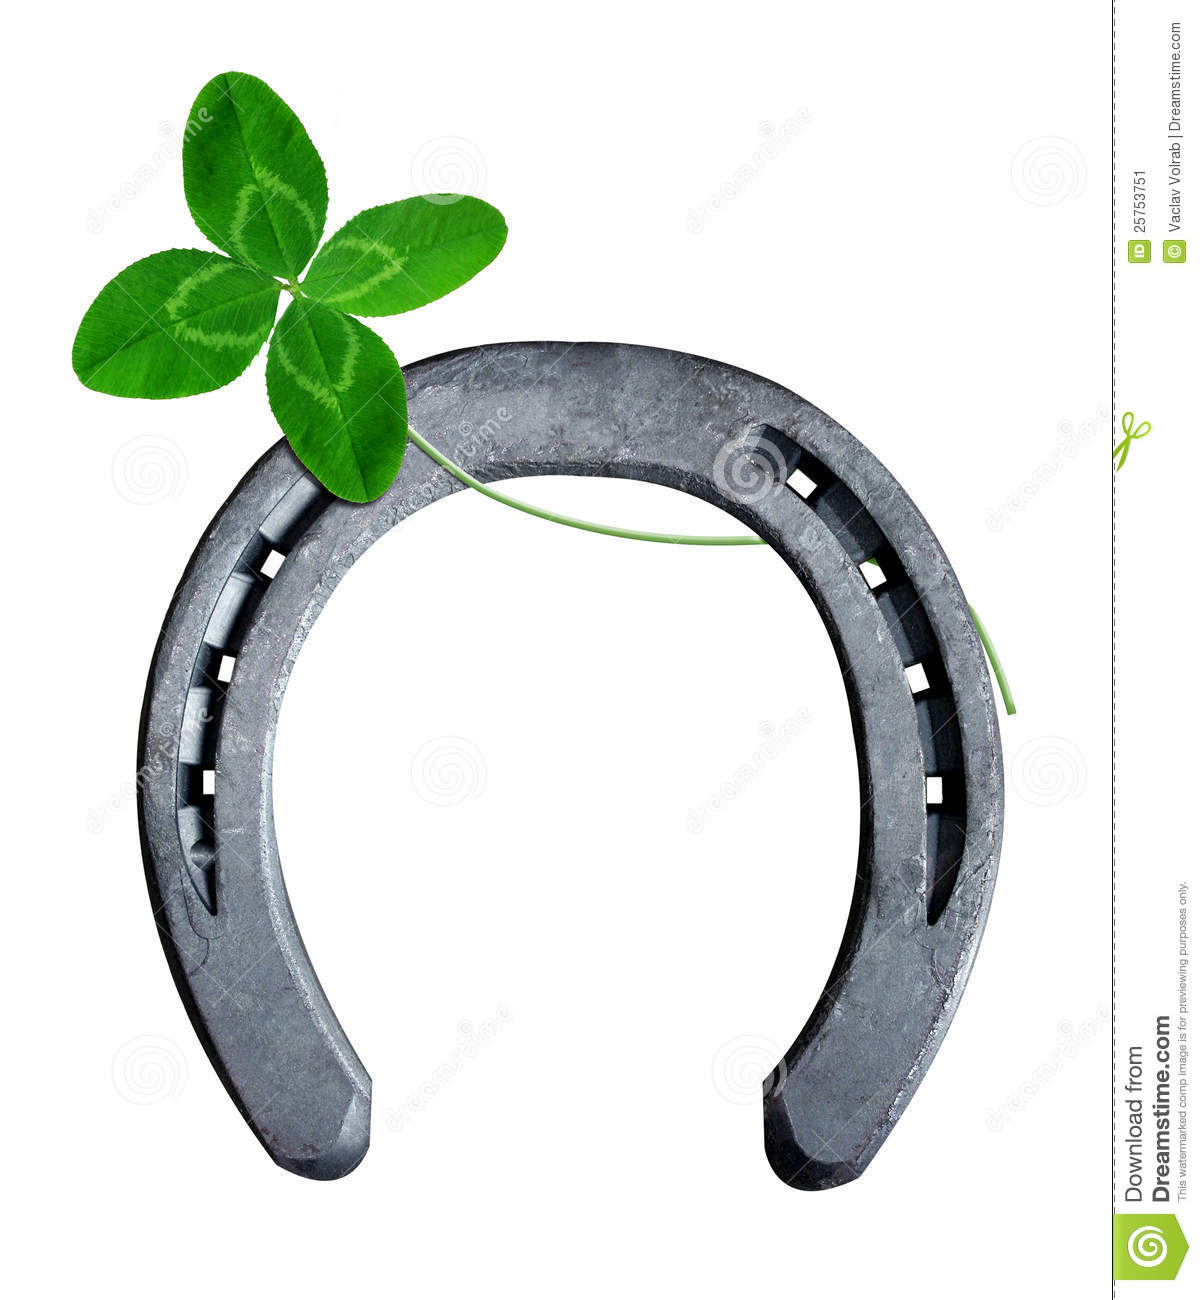 Horseshoe With Clover Stock Image - Image: 25753751: dreamstime.com/stock-image-horseshoe-clover-image25753751